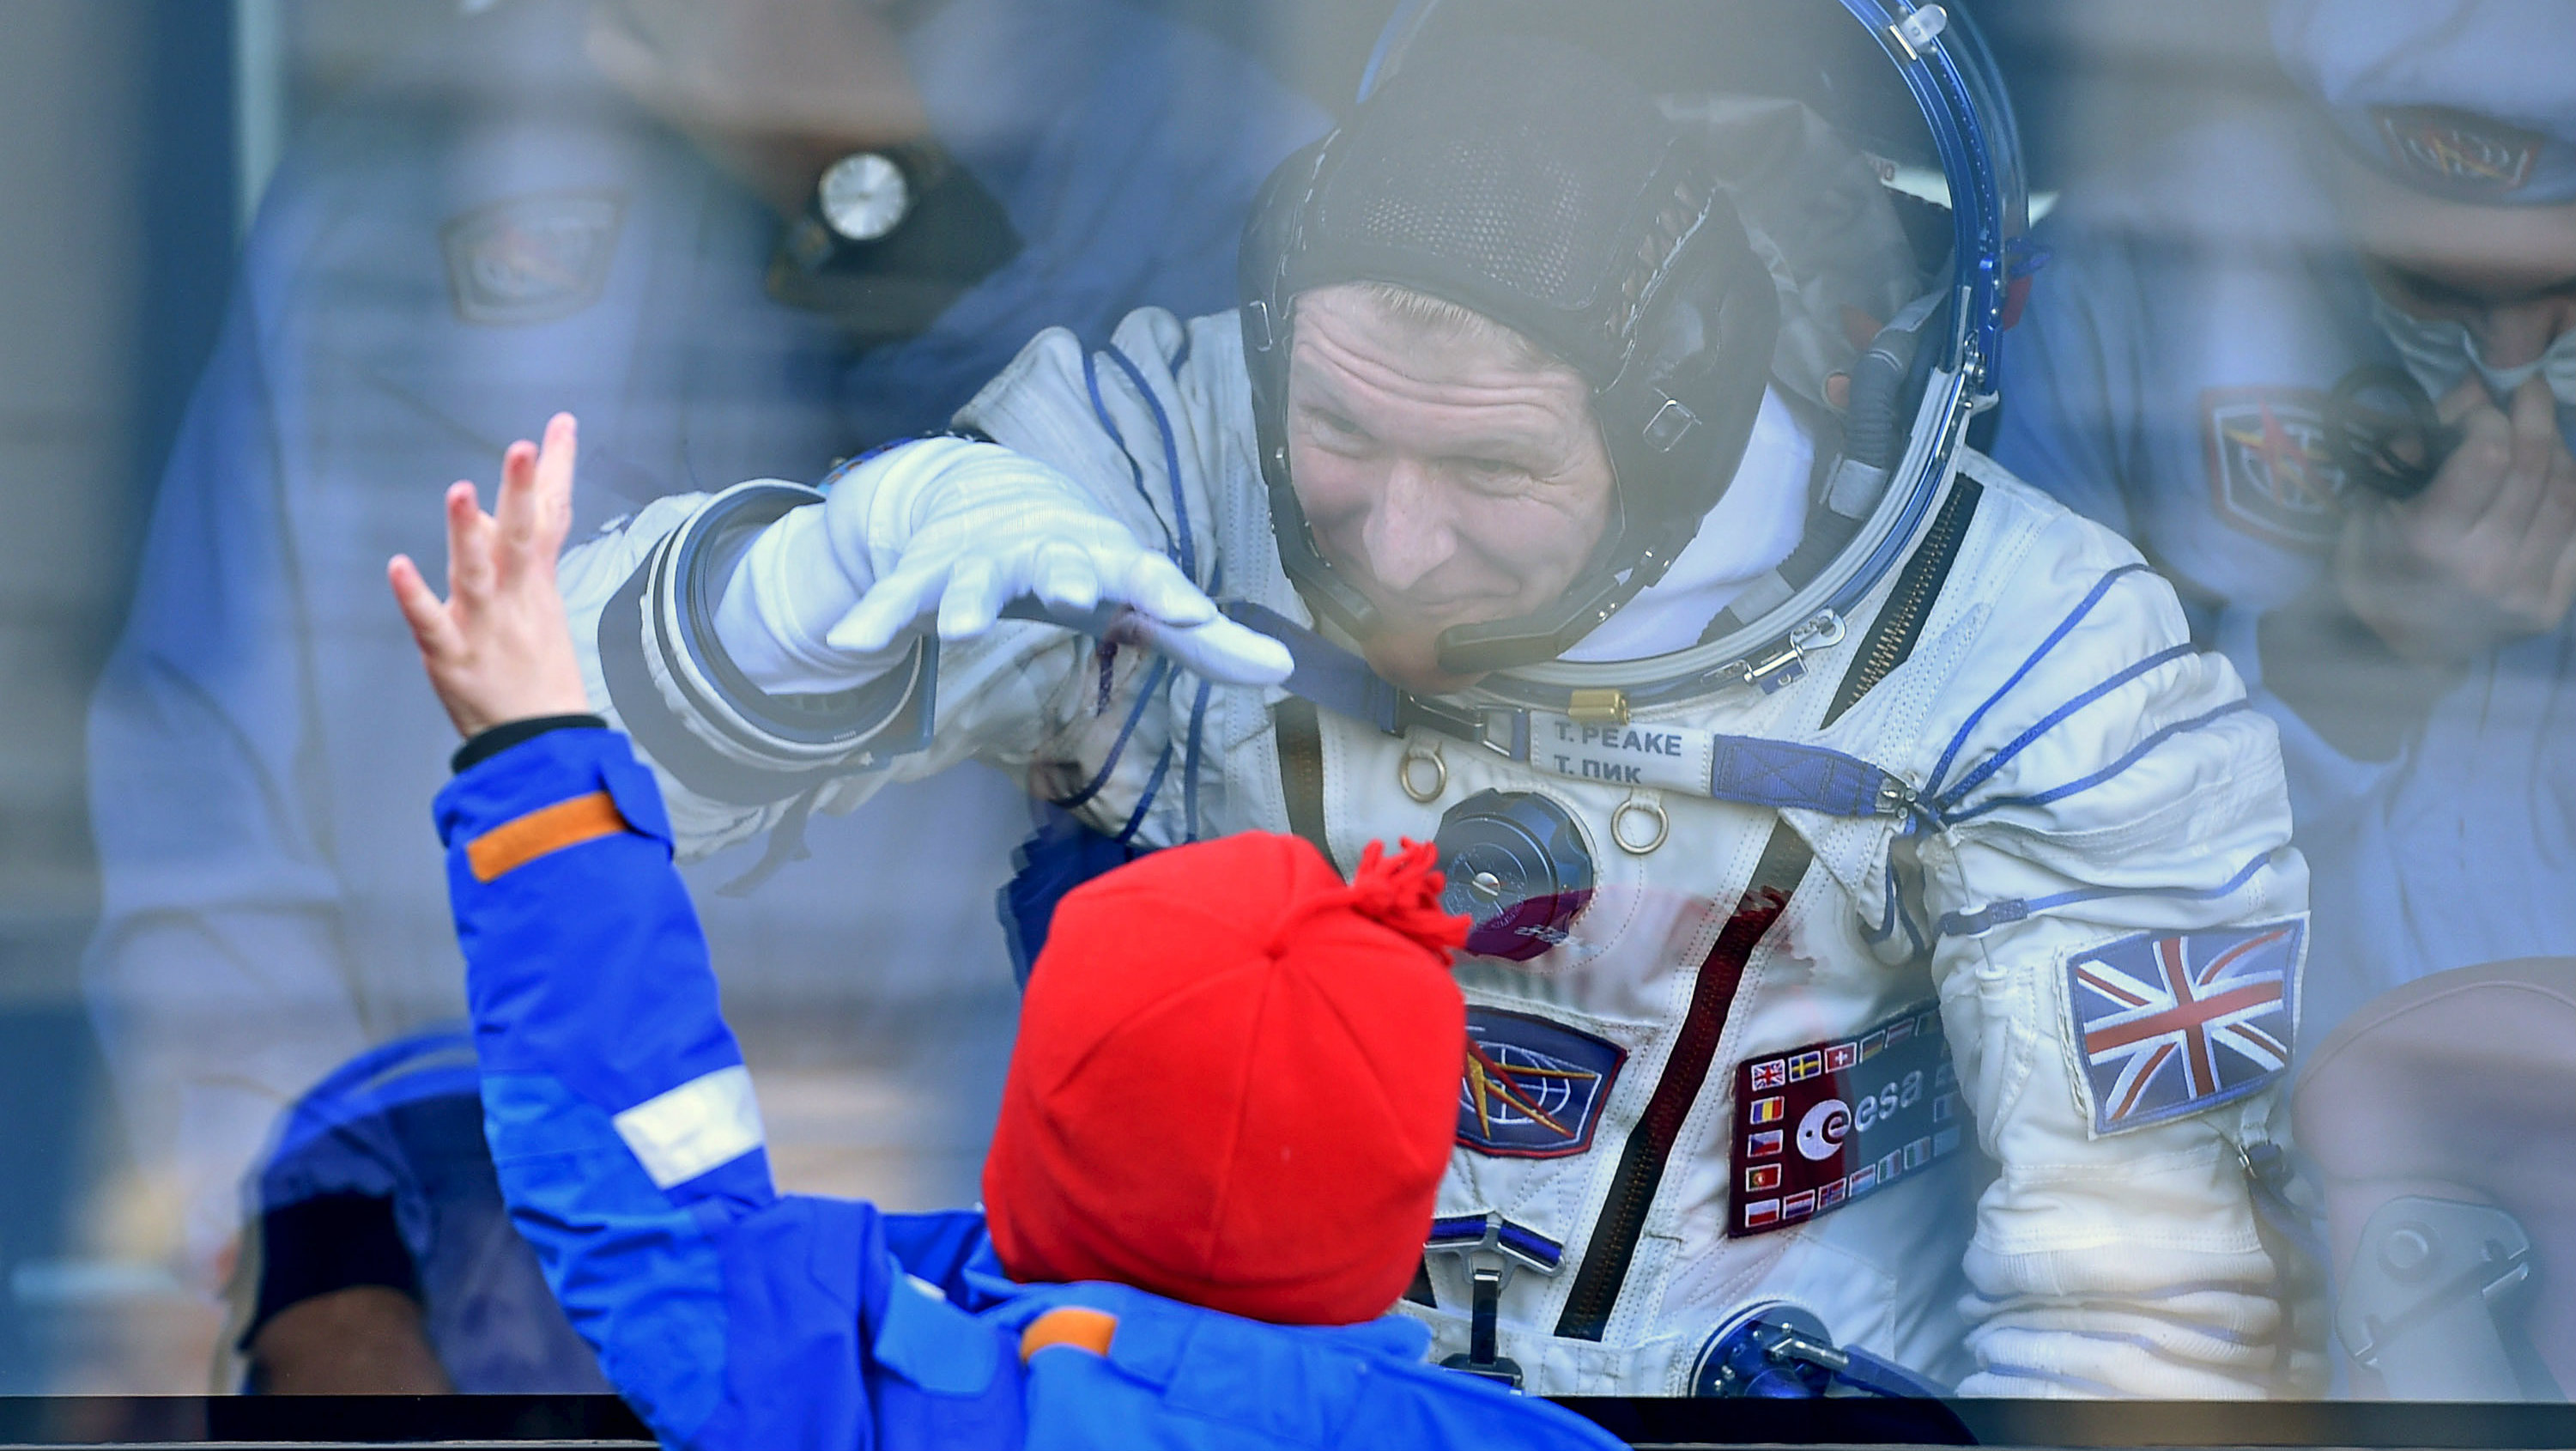 Member of the International Space Station expedition 46/47, British ESA astronaut Timothy Peake chats with his children during a sending-off ceremony at the Baikonur cosmodrome in Kazakhstan, 15 December 2015, before travelling on board the Soyuz TMA-19M spacecraft to the International Space Station (ISS). REUTERS/Kirill Kudryavtsev/Pool TPX IMAGES OF THE DAY